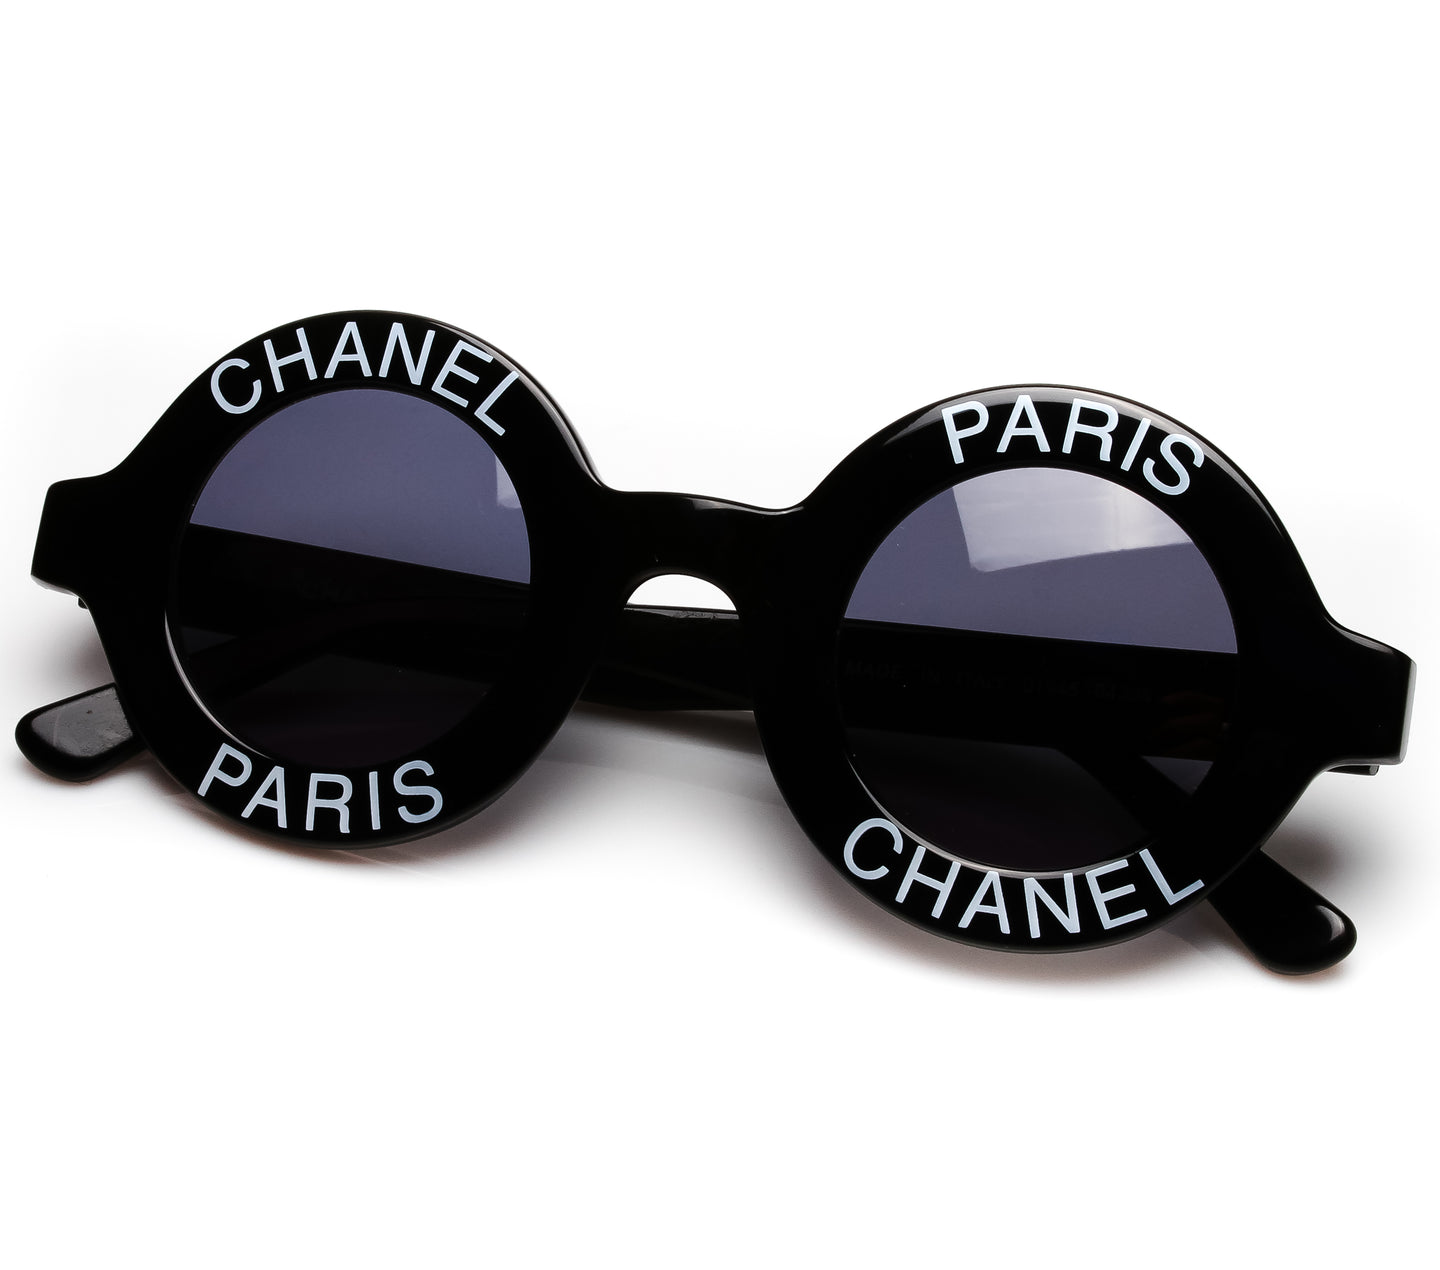 Chanel 01945 94305 Thumbnail, Chanel , glasses frames, eyeglasses online, eyeglass frames, mens glasses, womens glasses, buy glasses online, designer eyeglasses, vintage sunglasses, retro sunglasses, vintage glasses, sunglass, eyeglass, glasses, lens, vintage frames company, vf